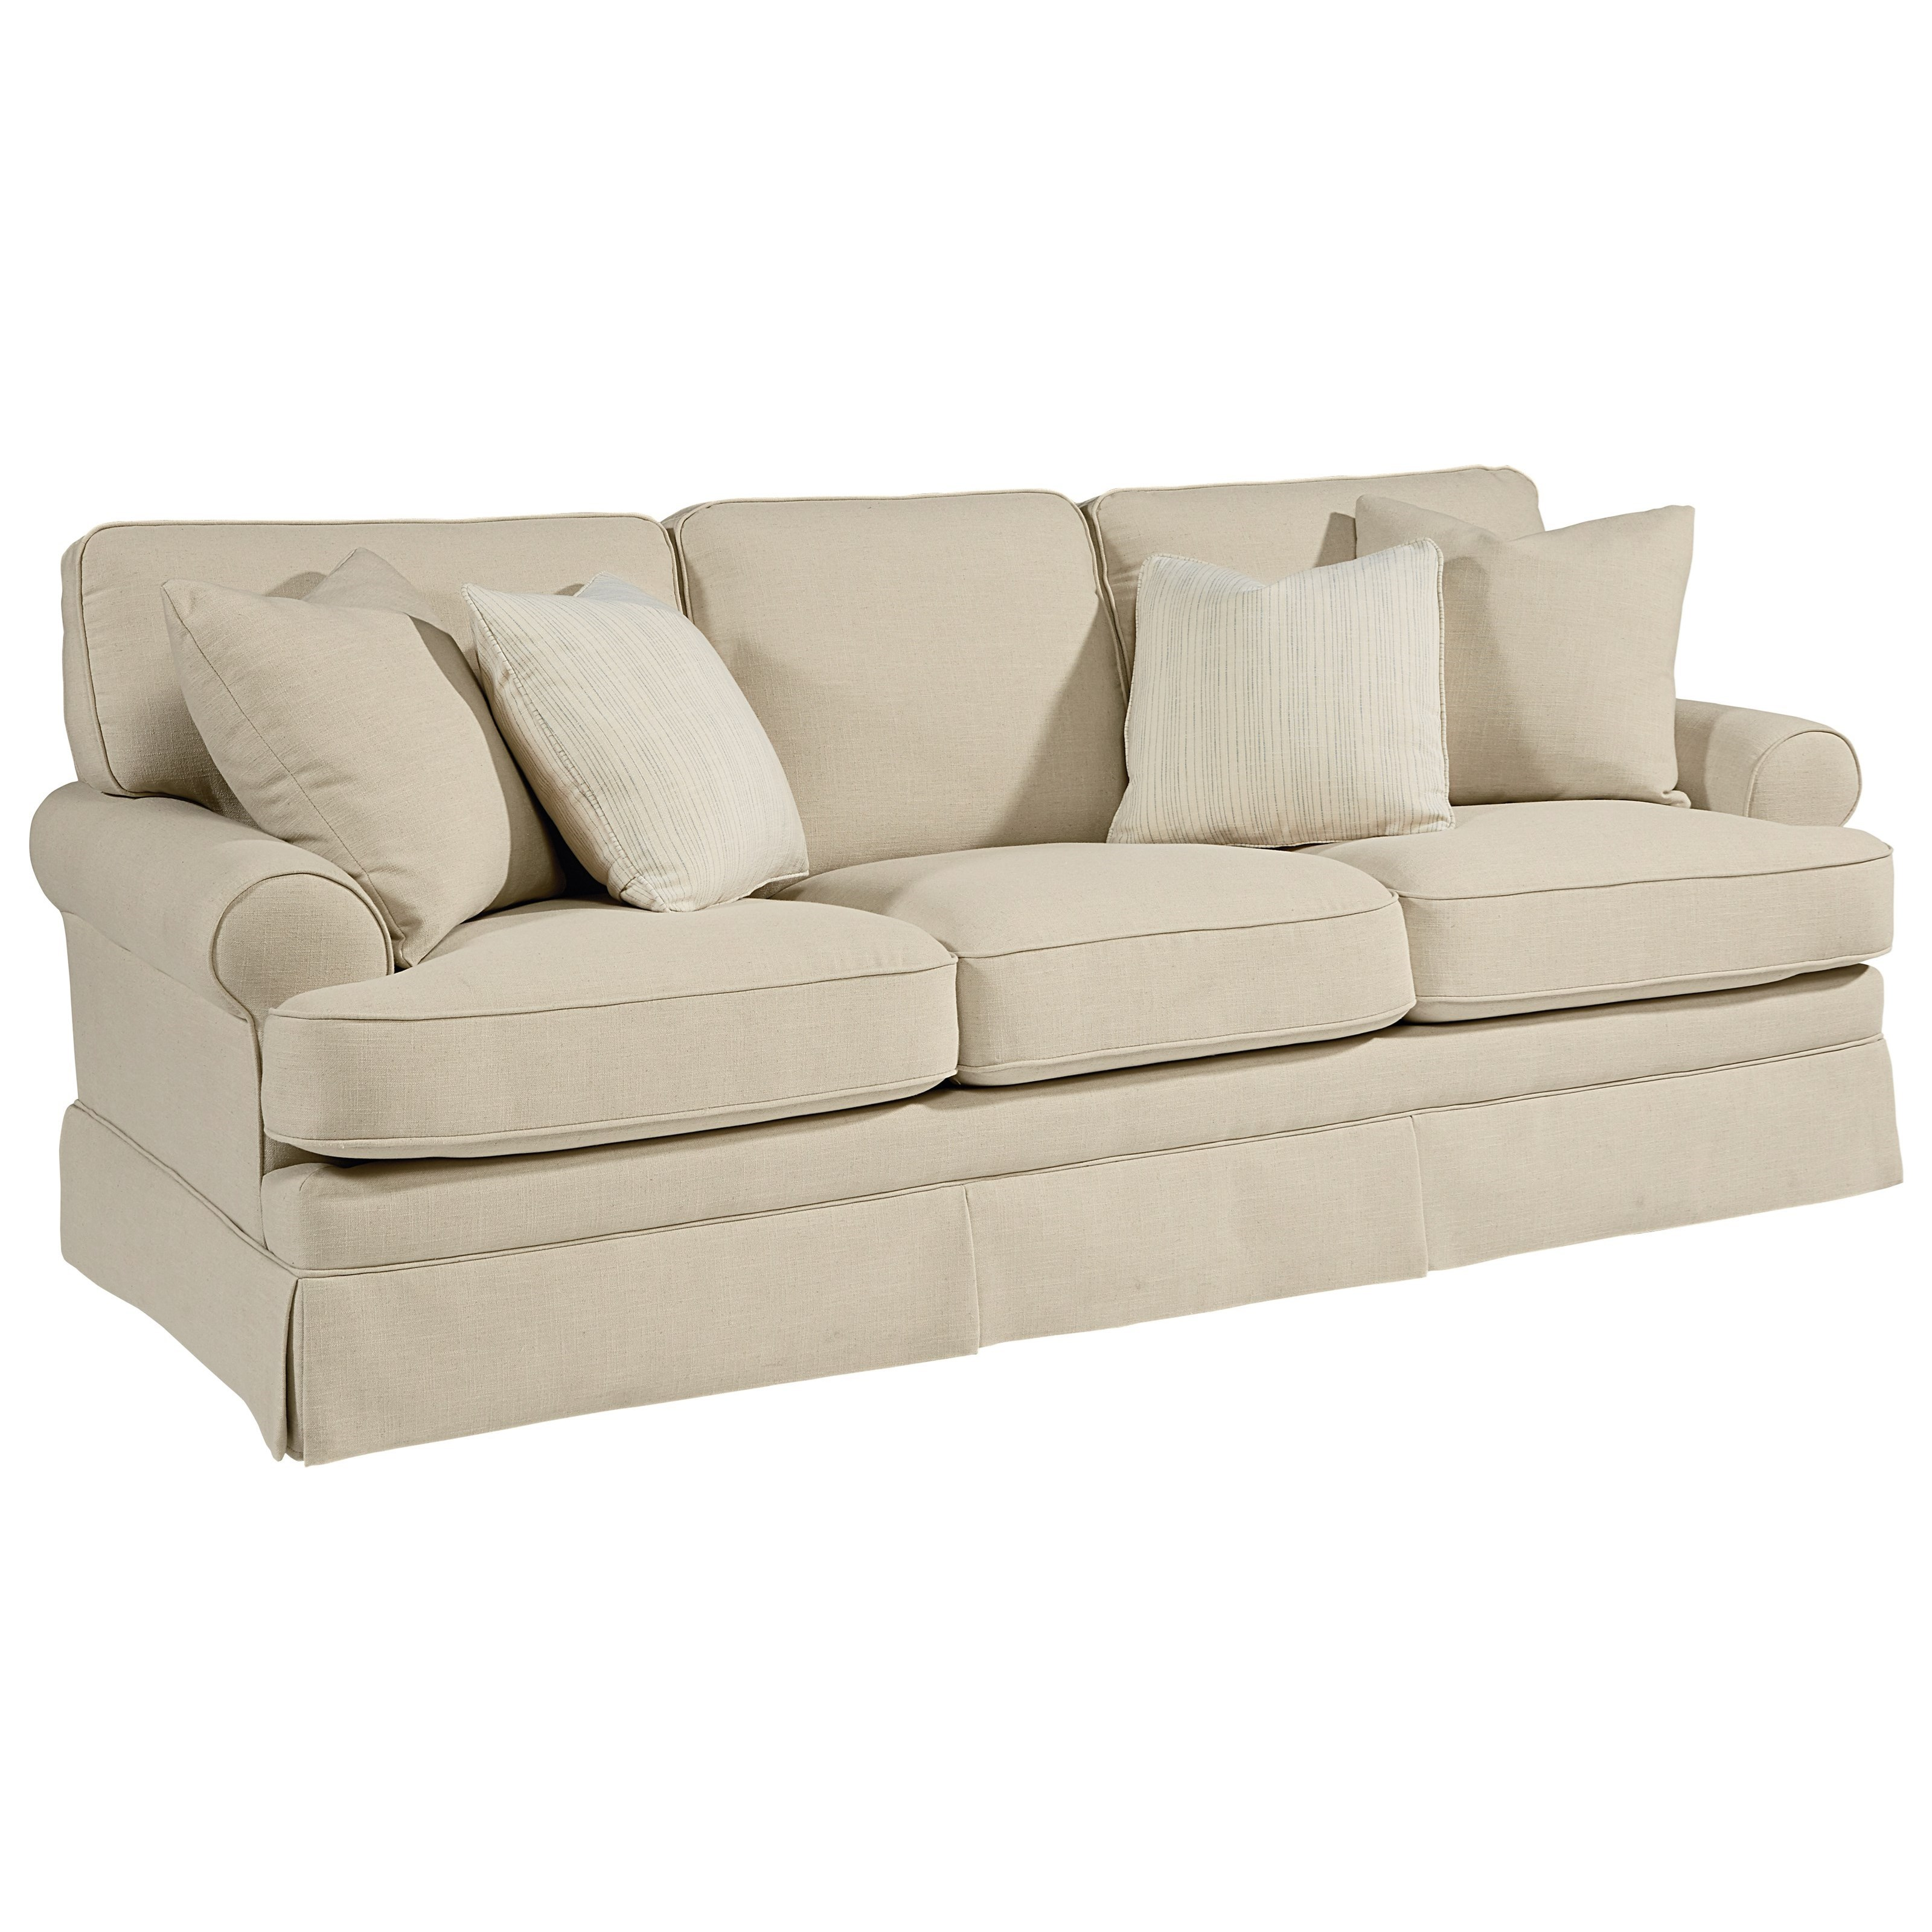 Magnolia home by joanna gaines heritage sofa miskelly for Divan chair